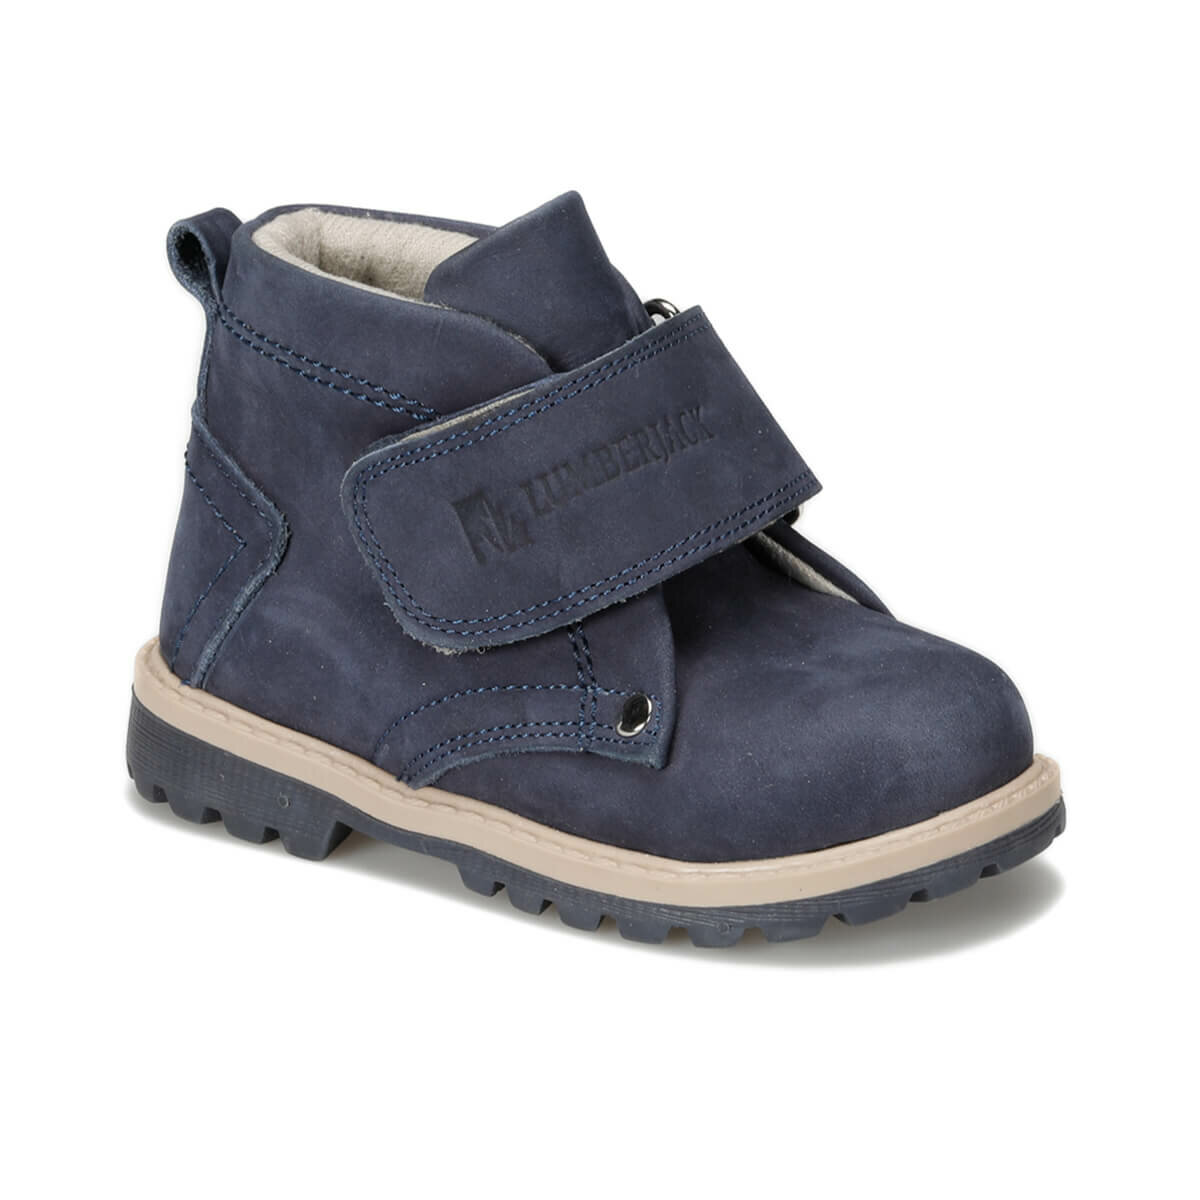 FLO ROCK 9PR Navy Blue Male Child Boots LUMBERJACK|Boots| |  - title=